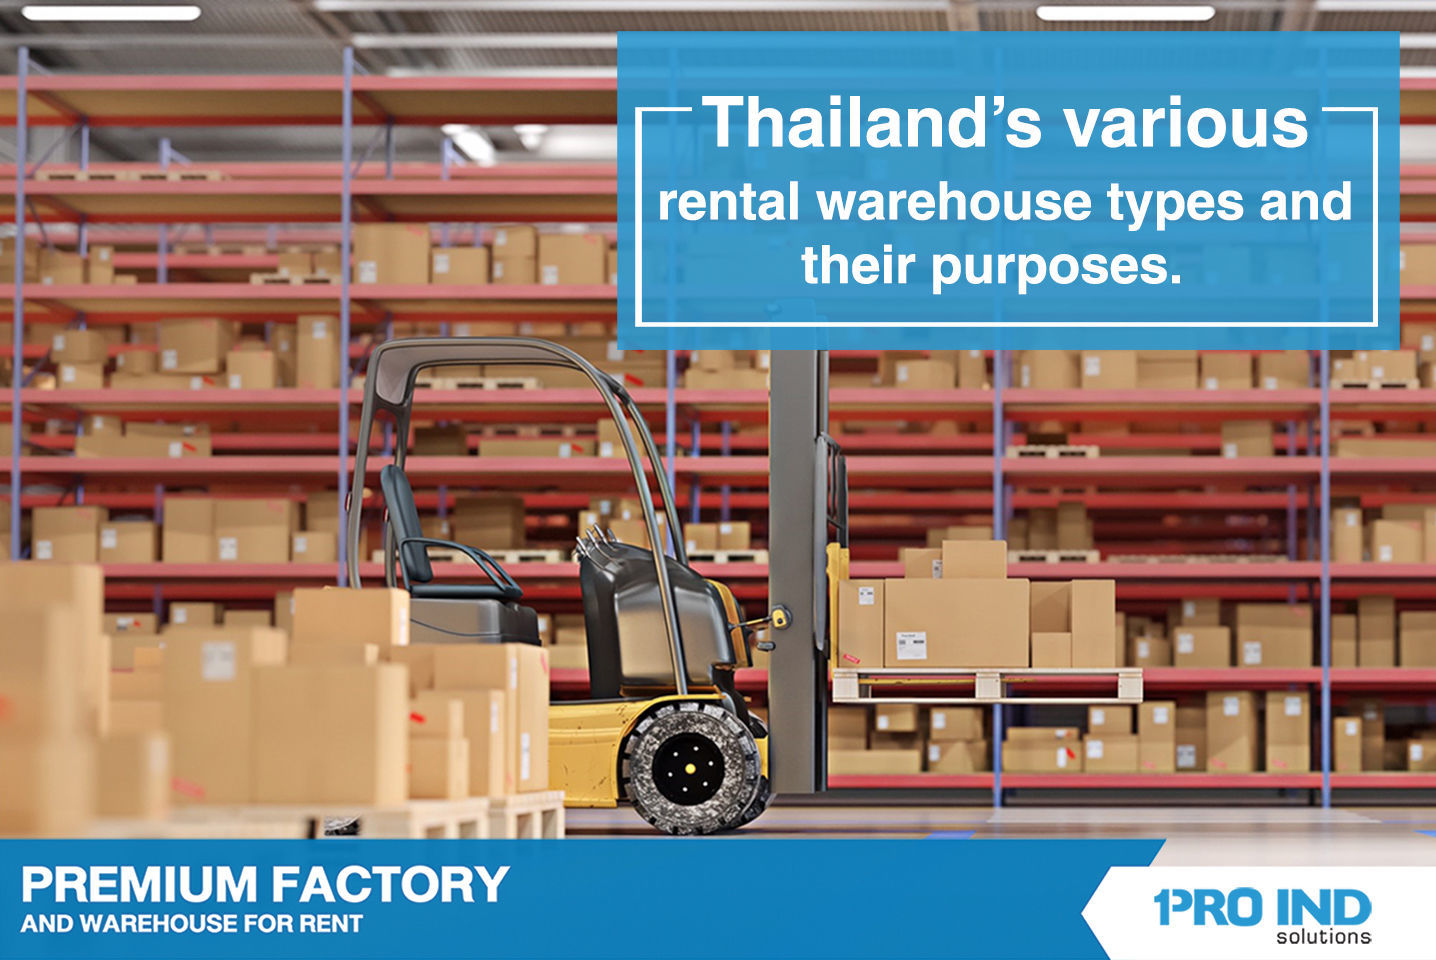 we would examine the various types of rental warehouses offered in the Thai property market and how they can fit your business operations.